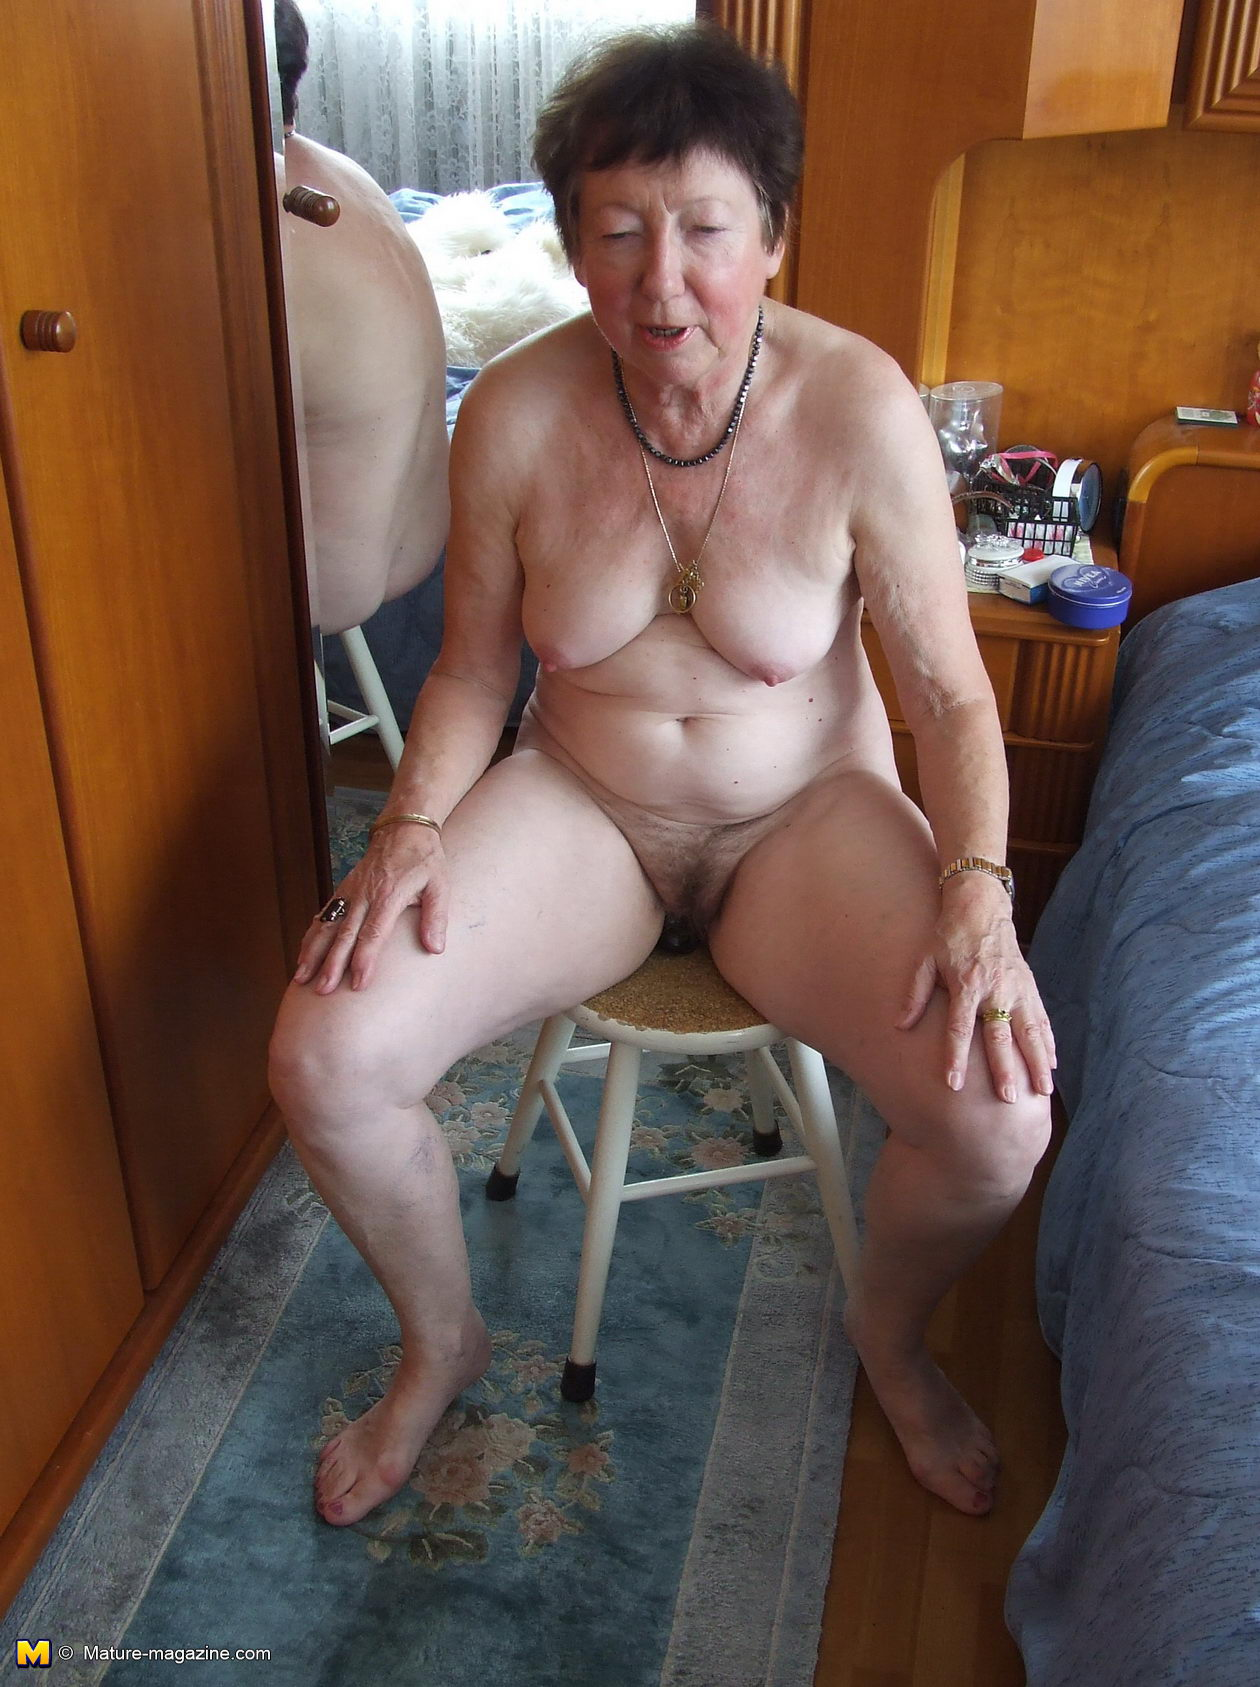 Barbara stories completely naked